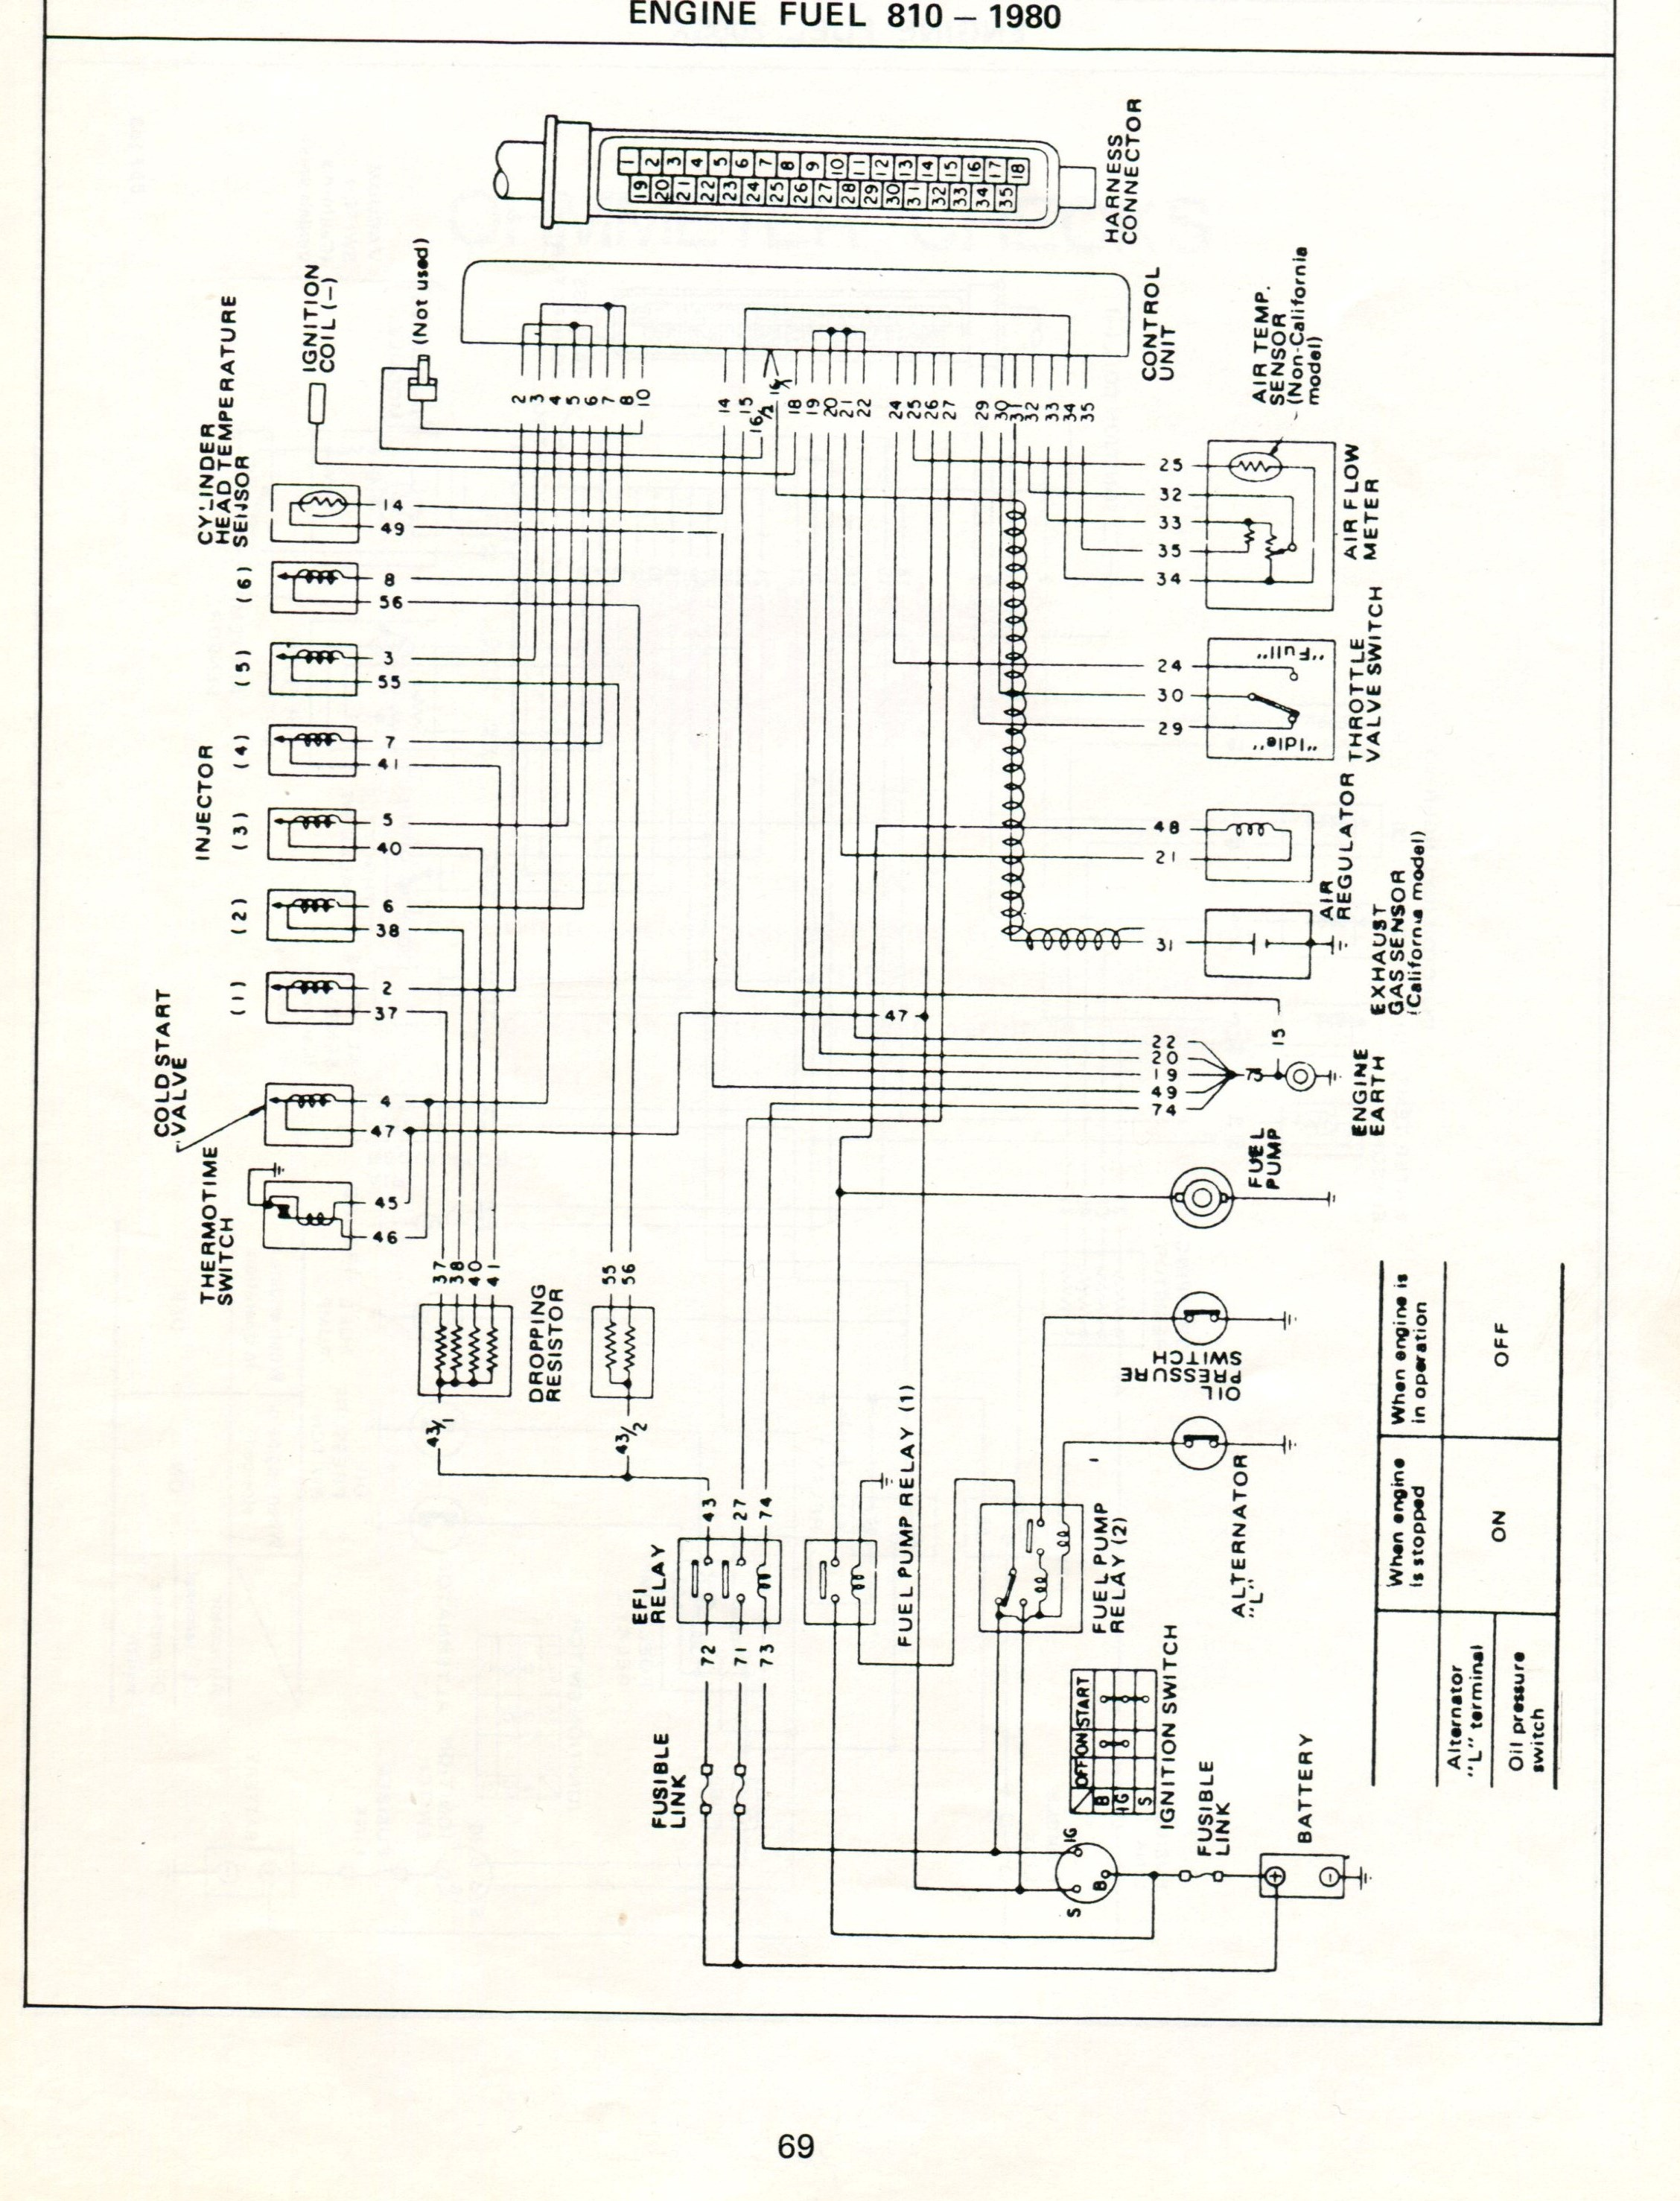 1979 280zx wiring diagram wiring diagram page datsun electronic fuel injection wiring diagrams [ 2256 x 2955 Pixel ]